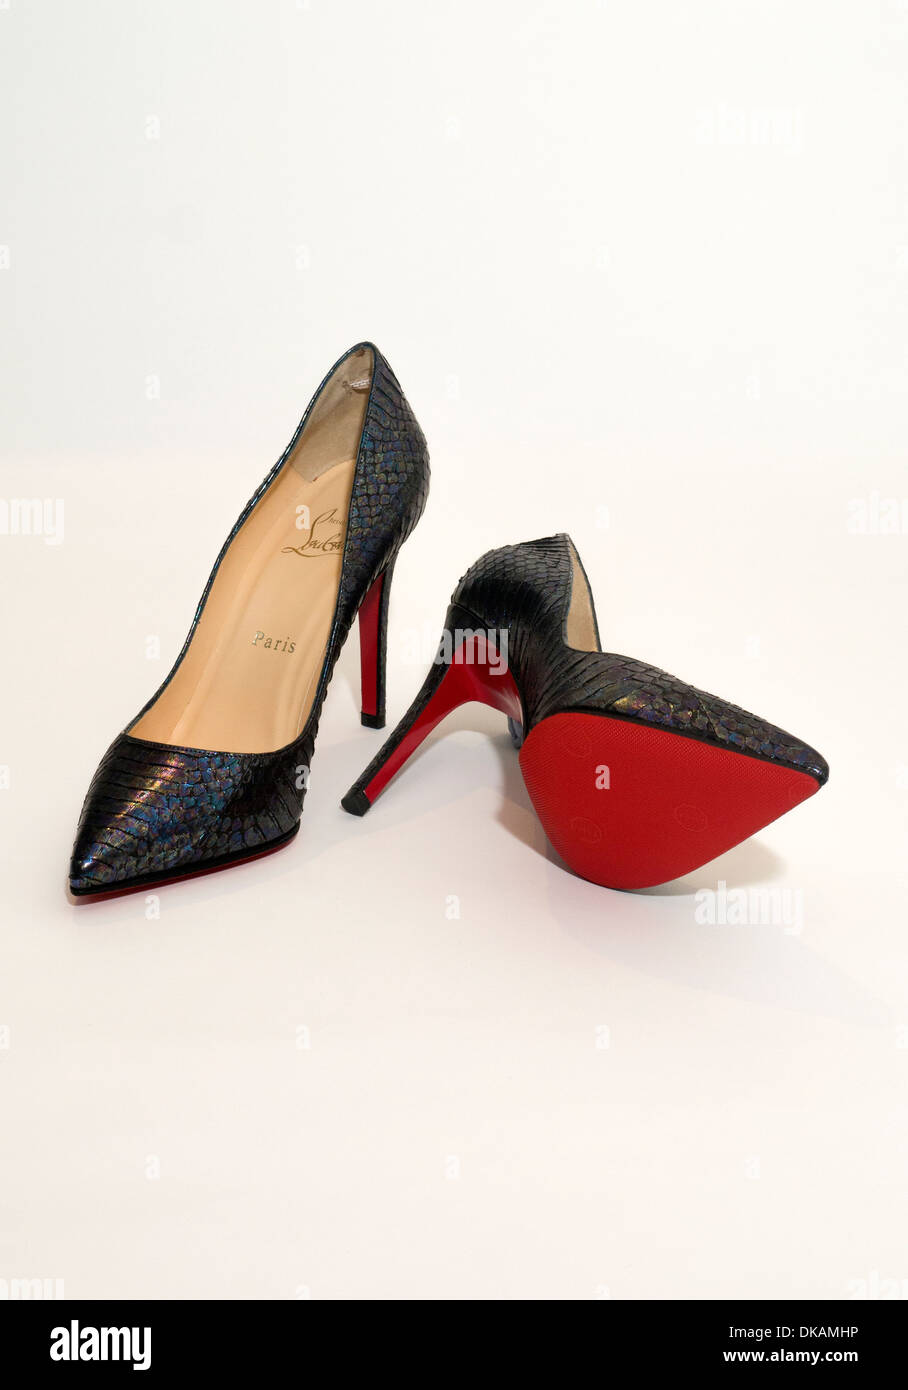 size 40 220e0 a3763 Christian Louboutin womens Shoes Stock Photo: 63545266 - Alamy